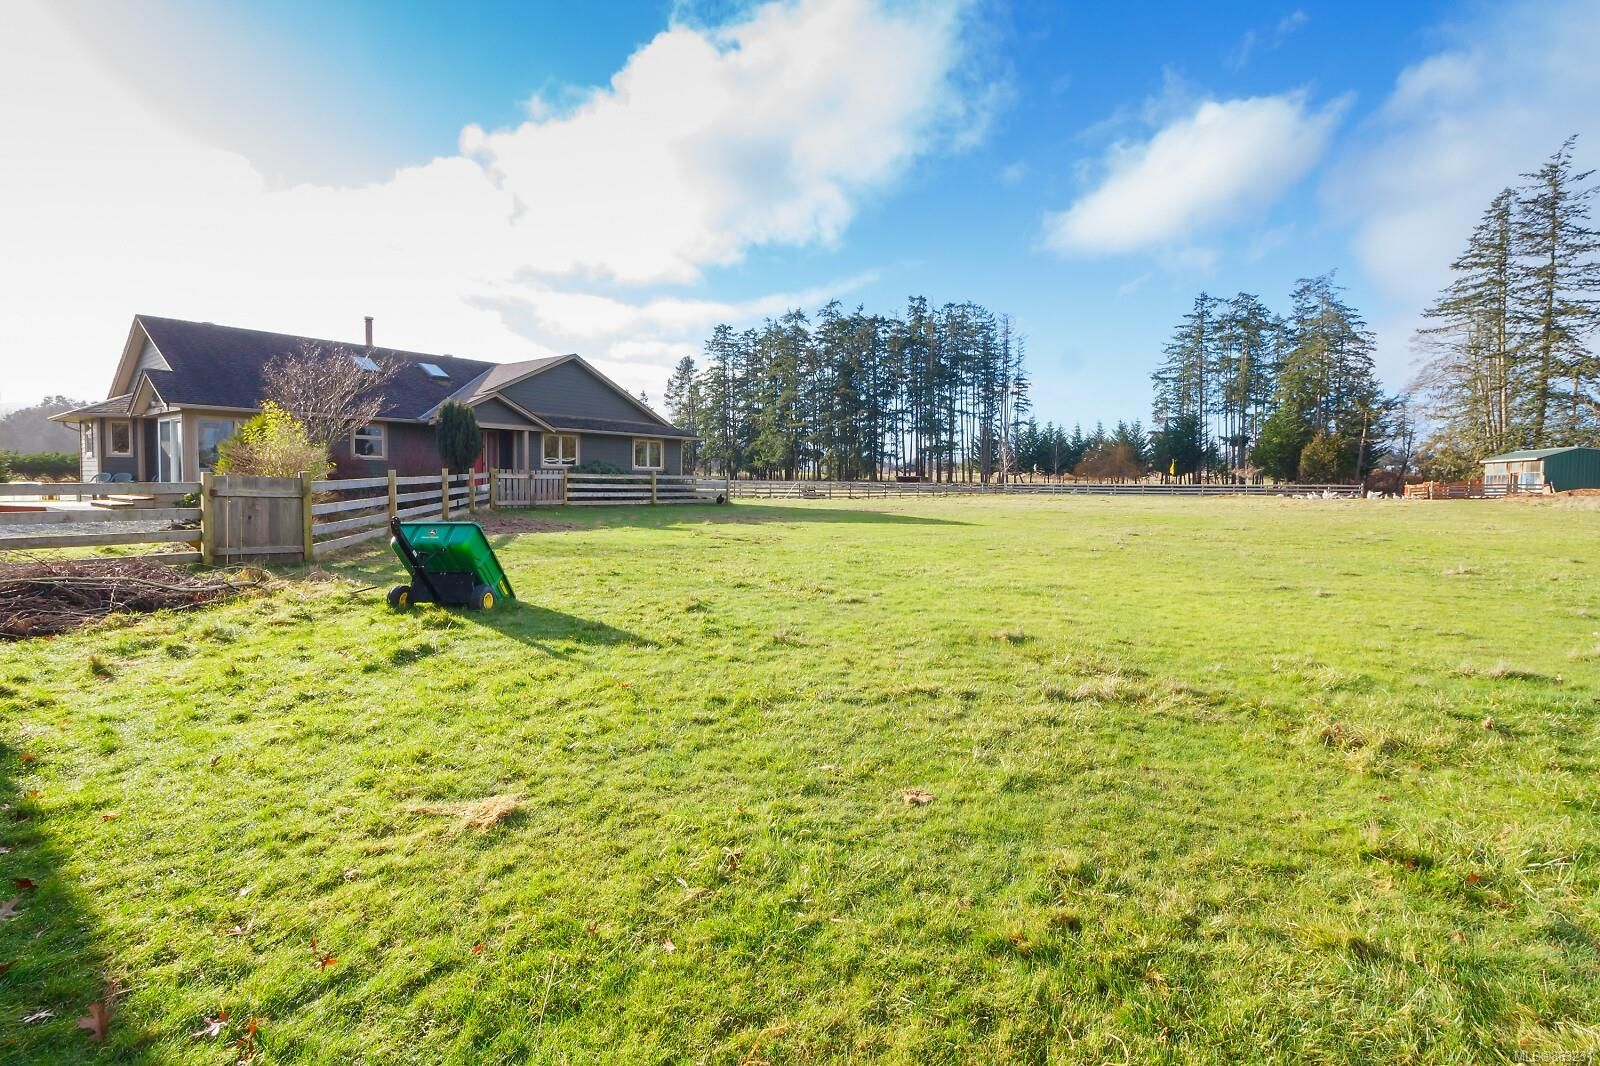 Photo 2: Photos: 1230 Hodges Rd in : PQ French Creek House for sale (Parksville/Qualicum)  : MLS®# 863231